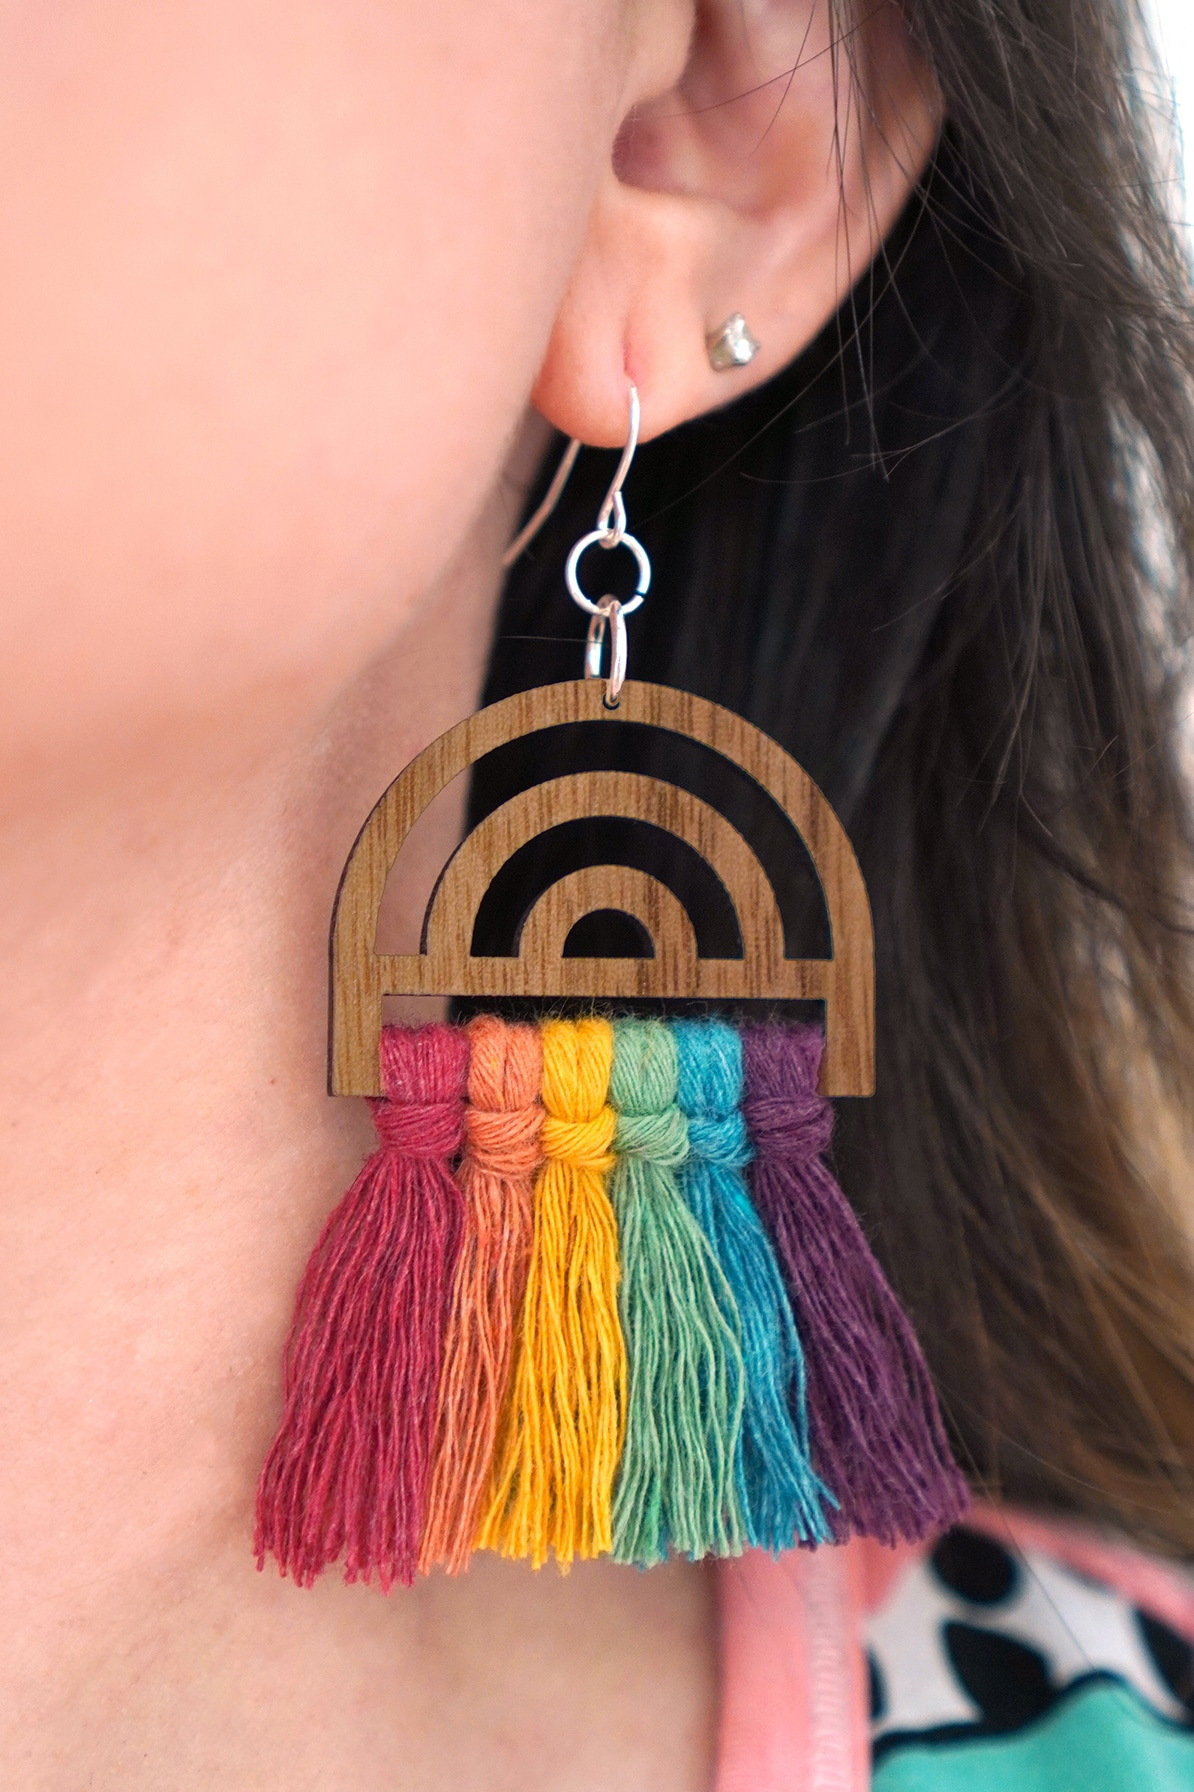 Close up or rainbow macramé earring being worn